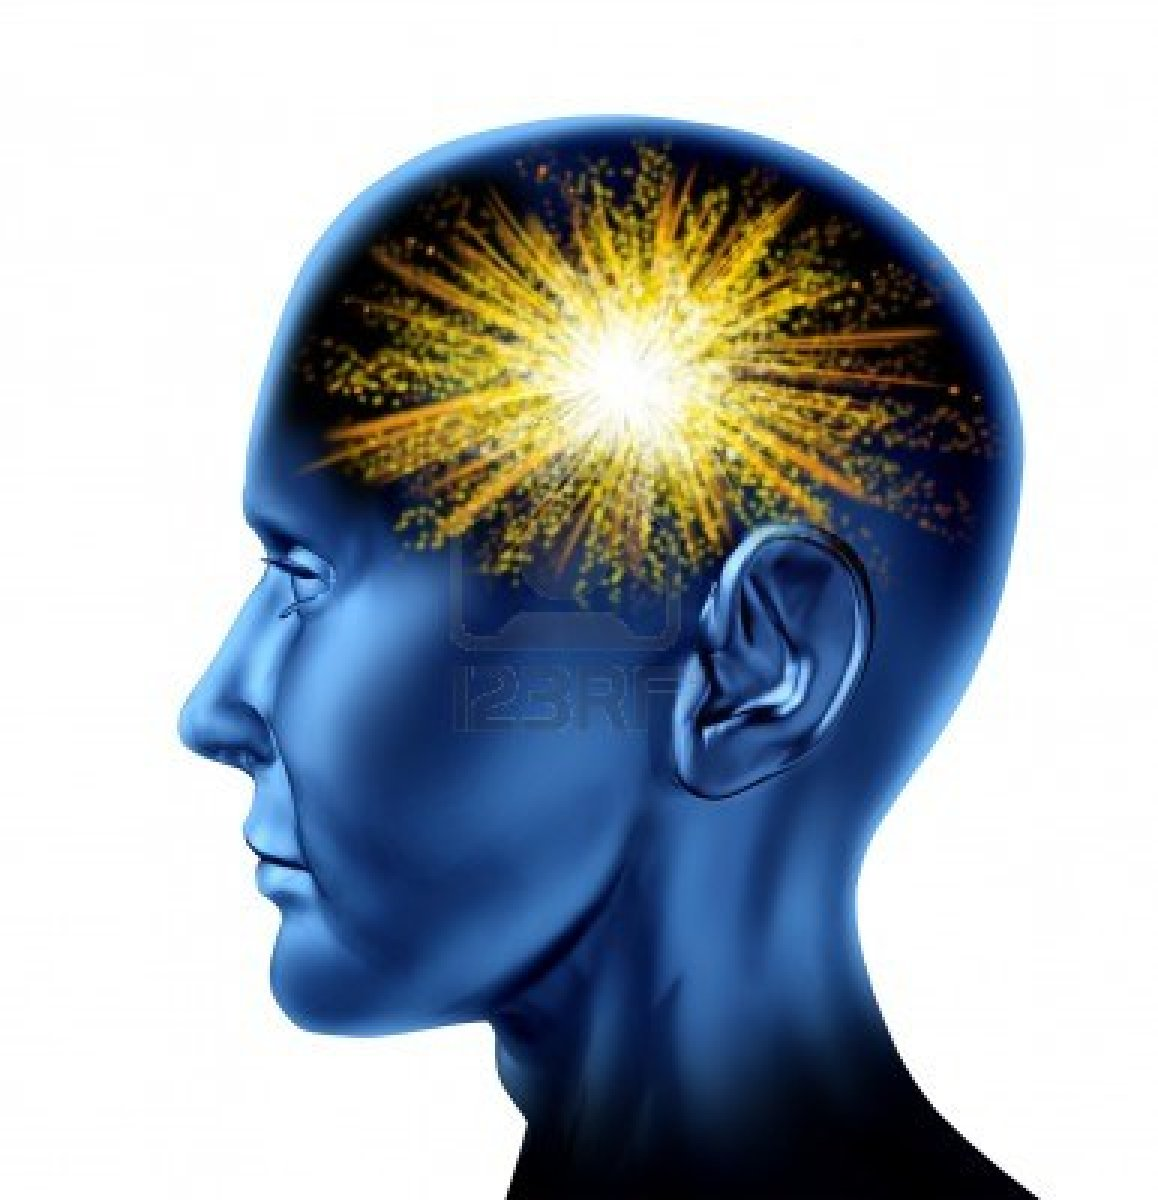 14119619-spark-of-genius-in-the-human-brain-as-a-symbol-of-invention-and-wisdom-of-creative-thinking.jpg